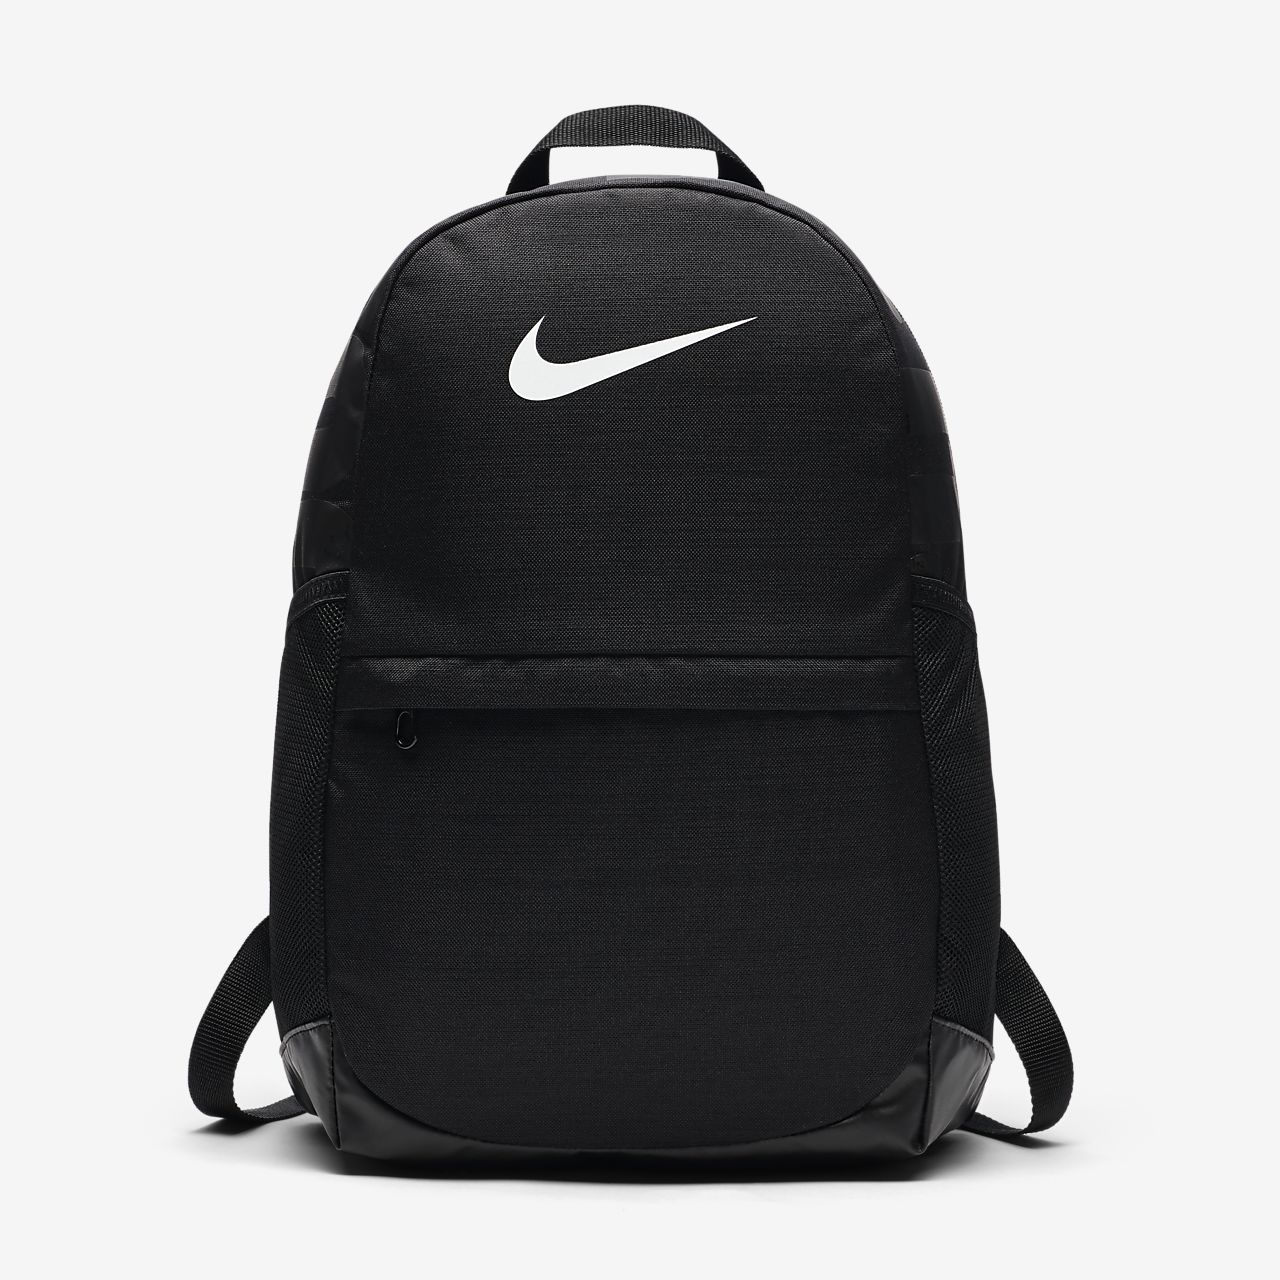 9c87074e44e Low Resolution Nike Brasilia Rugzak kids Nike Brasilia Rugzak kids